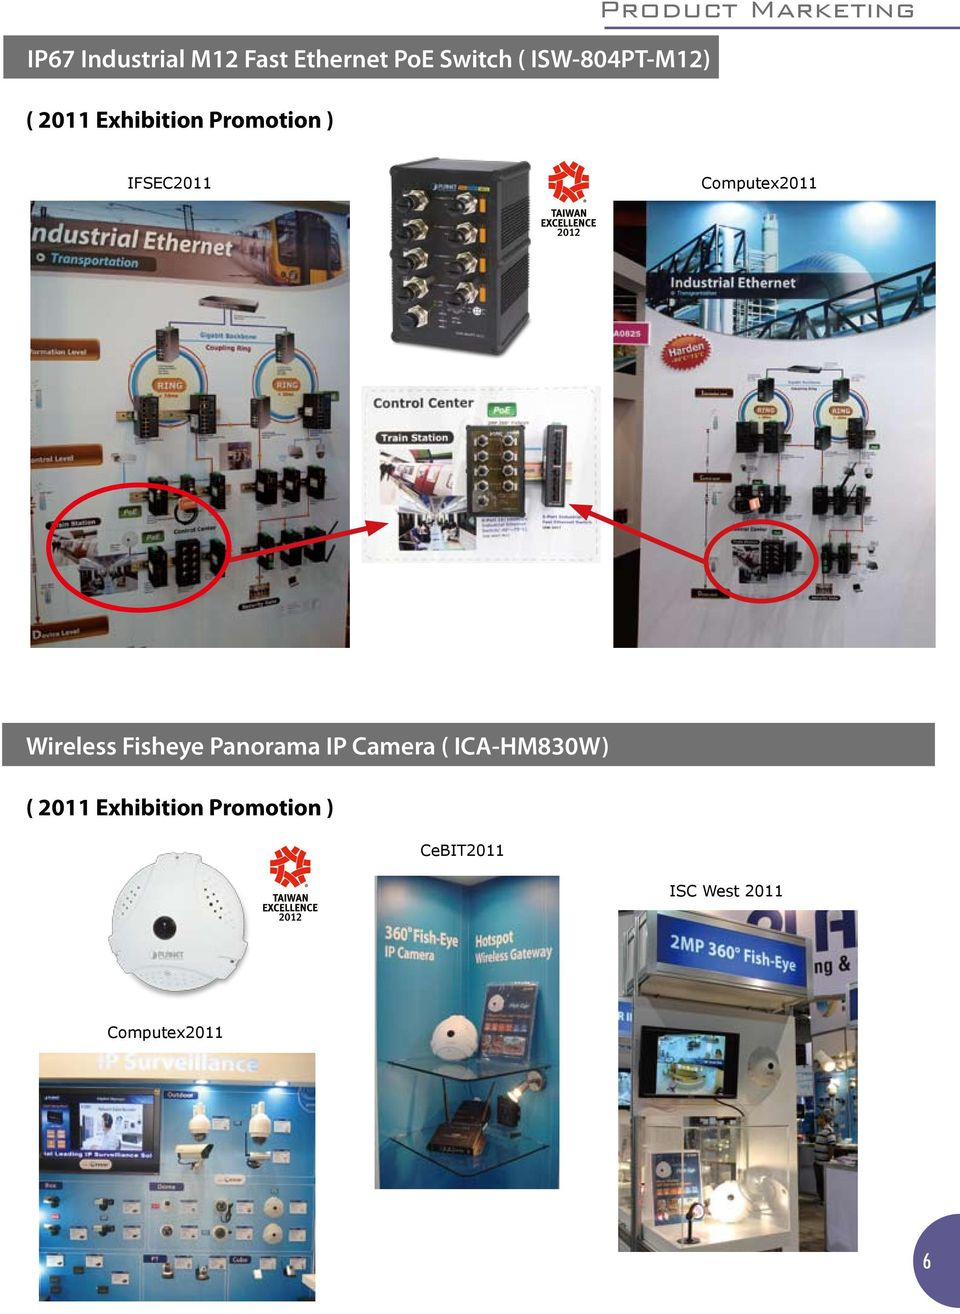 Computex2011 Wireless Fisheye Panorama IP Camera ( ICA-HM830W)